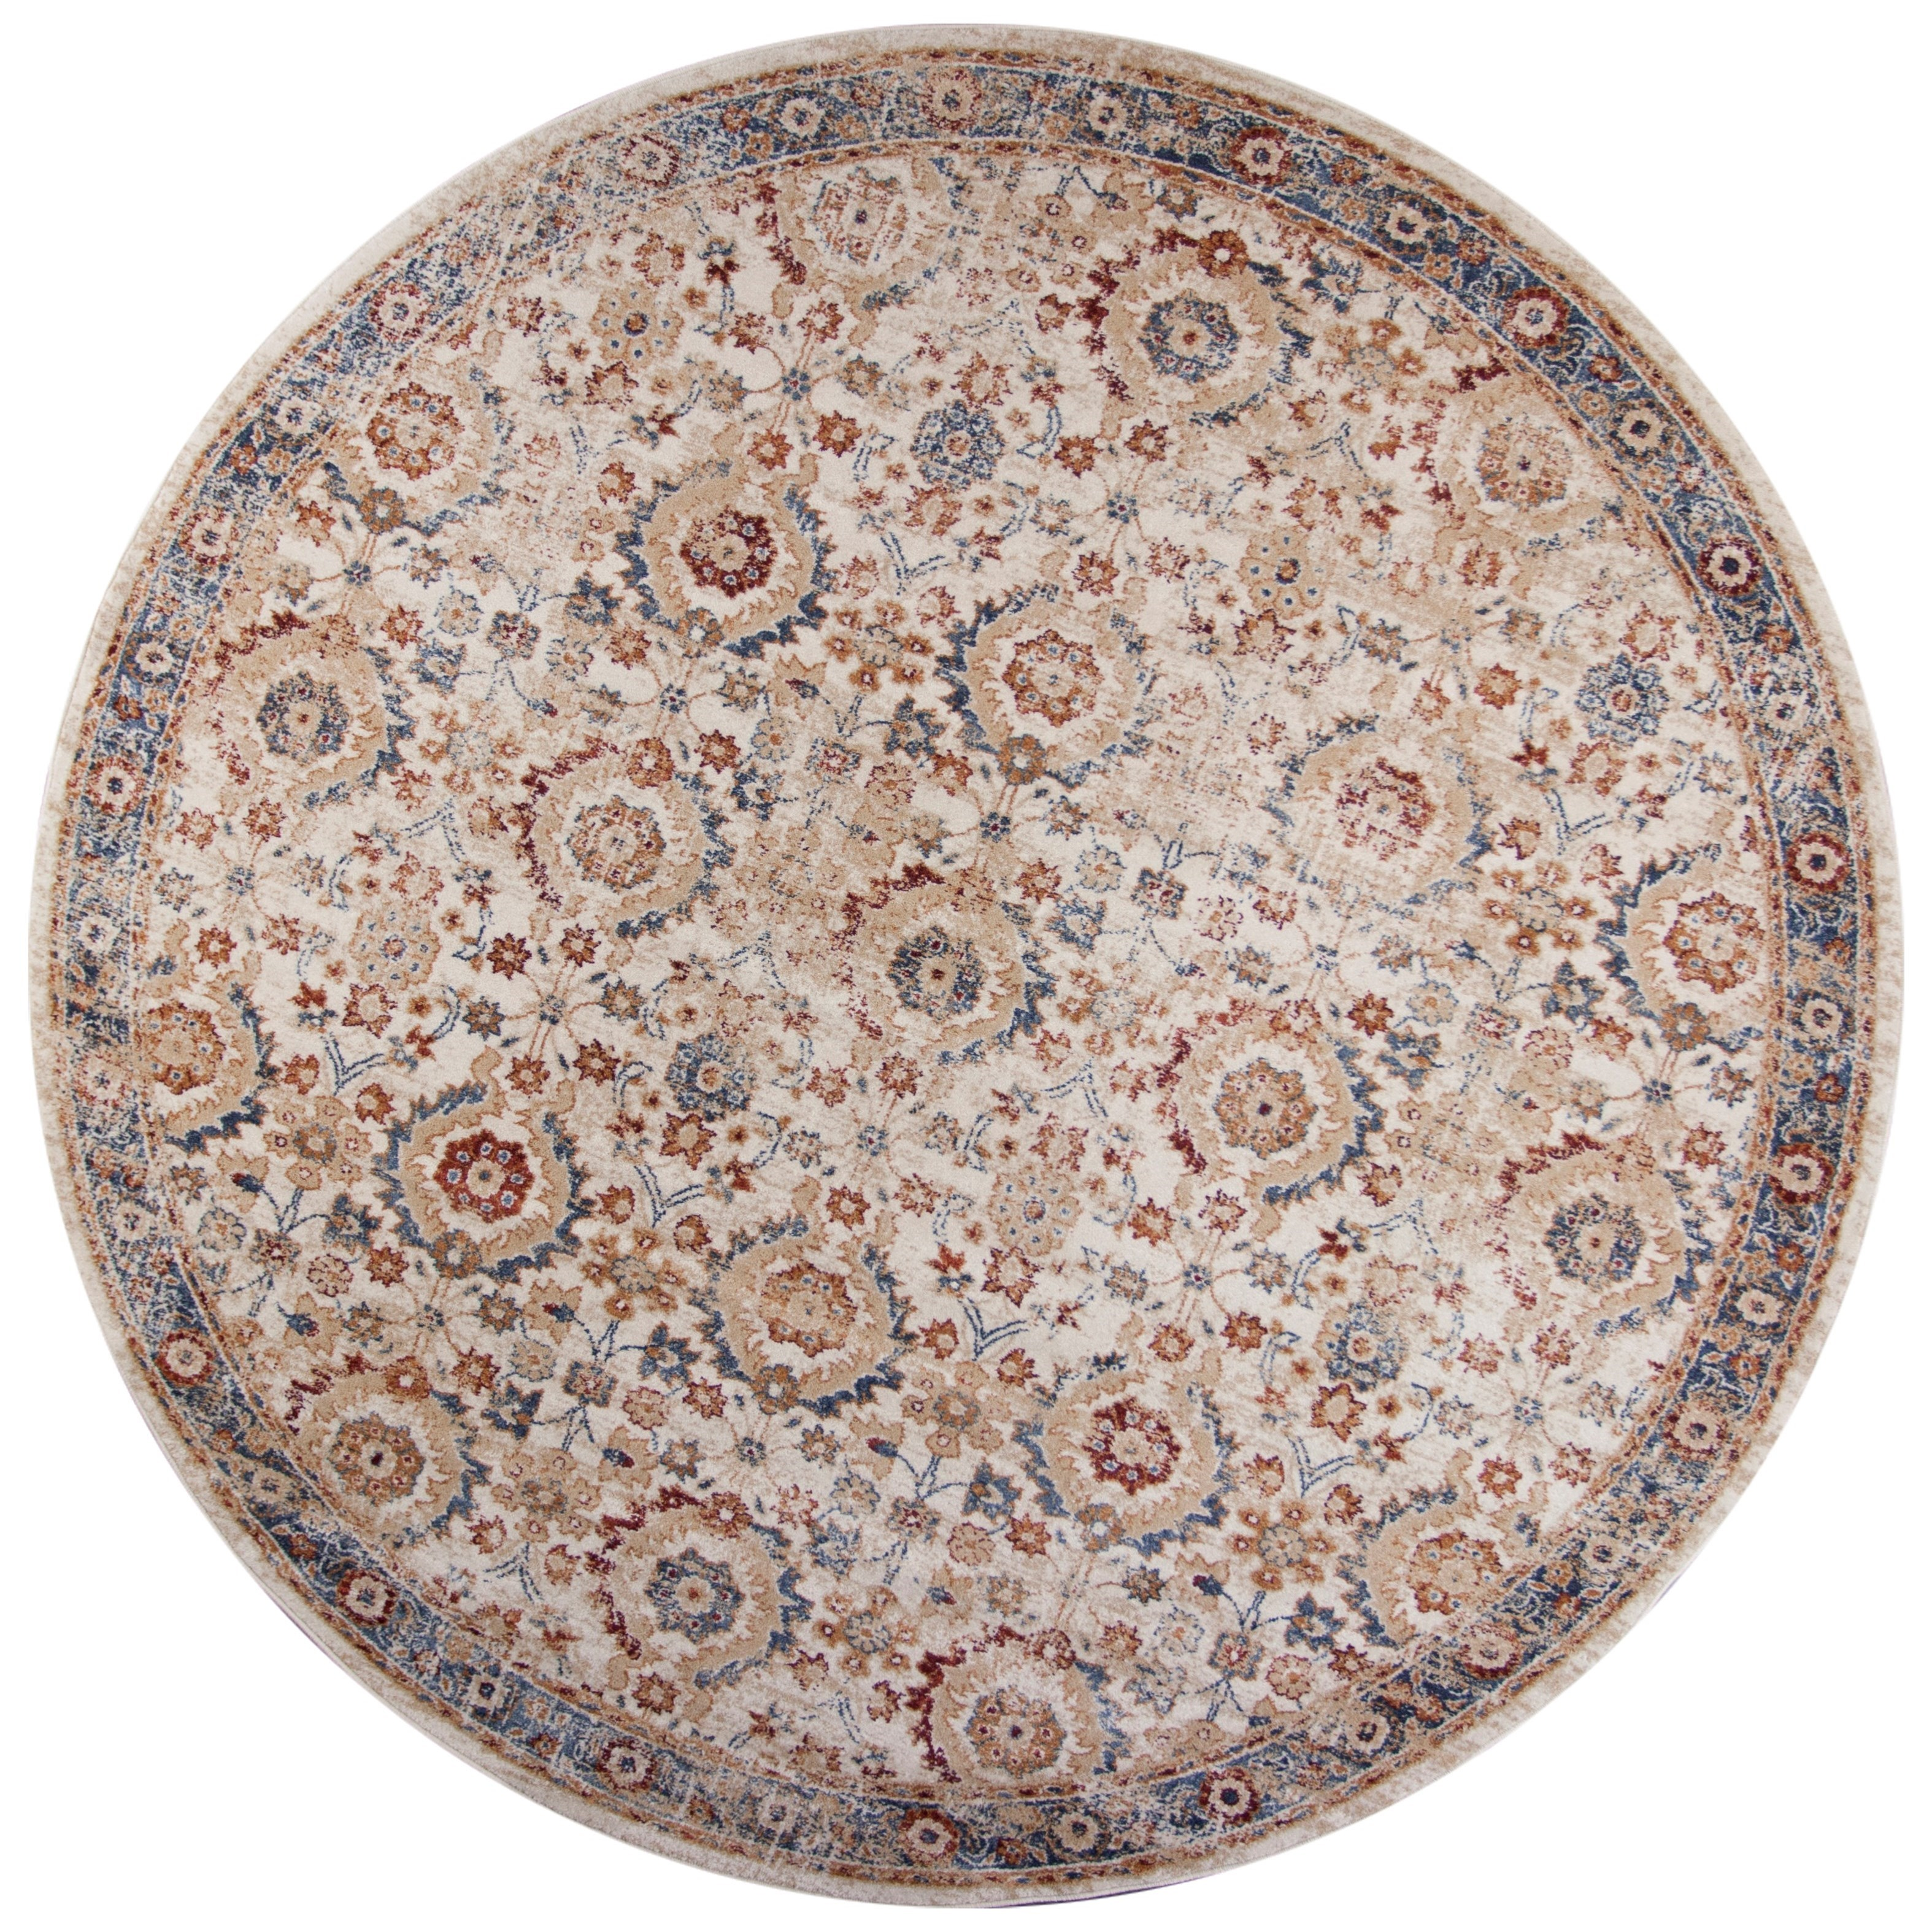 """Seville 7'7"""" Round Rug by Kas at Zak's Home"""